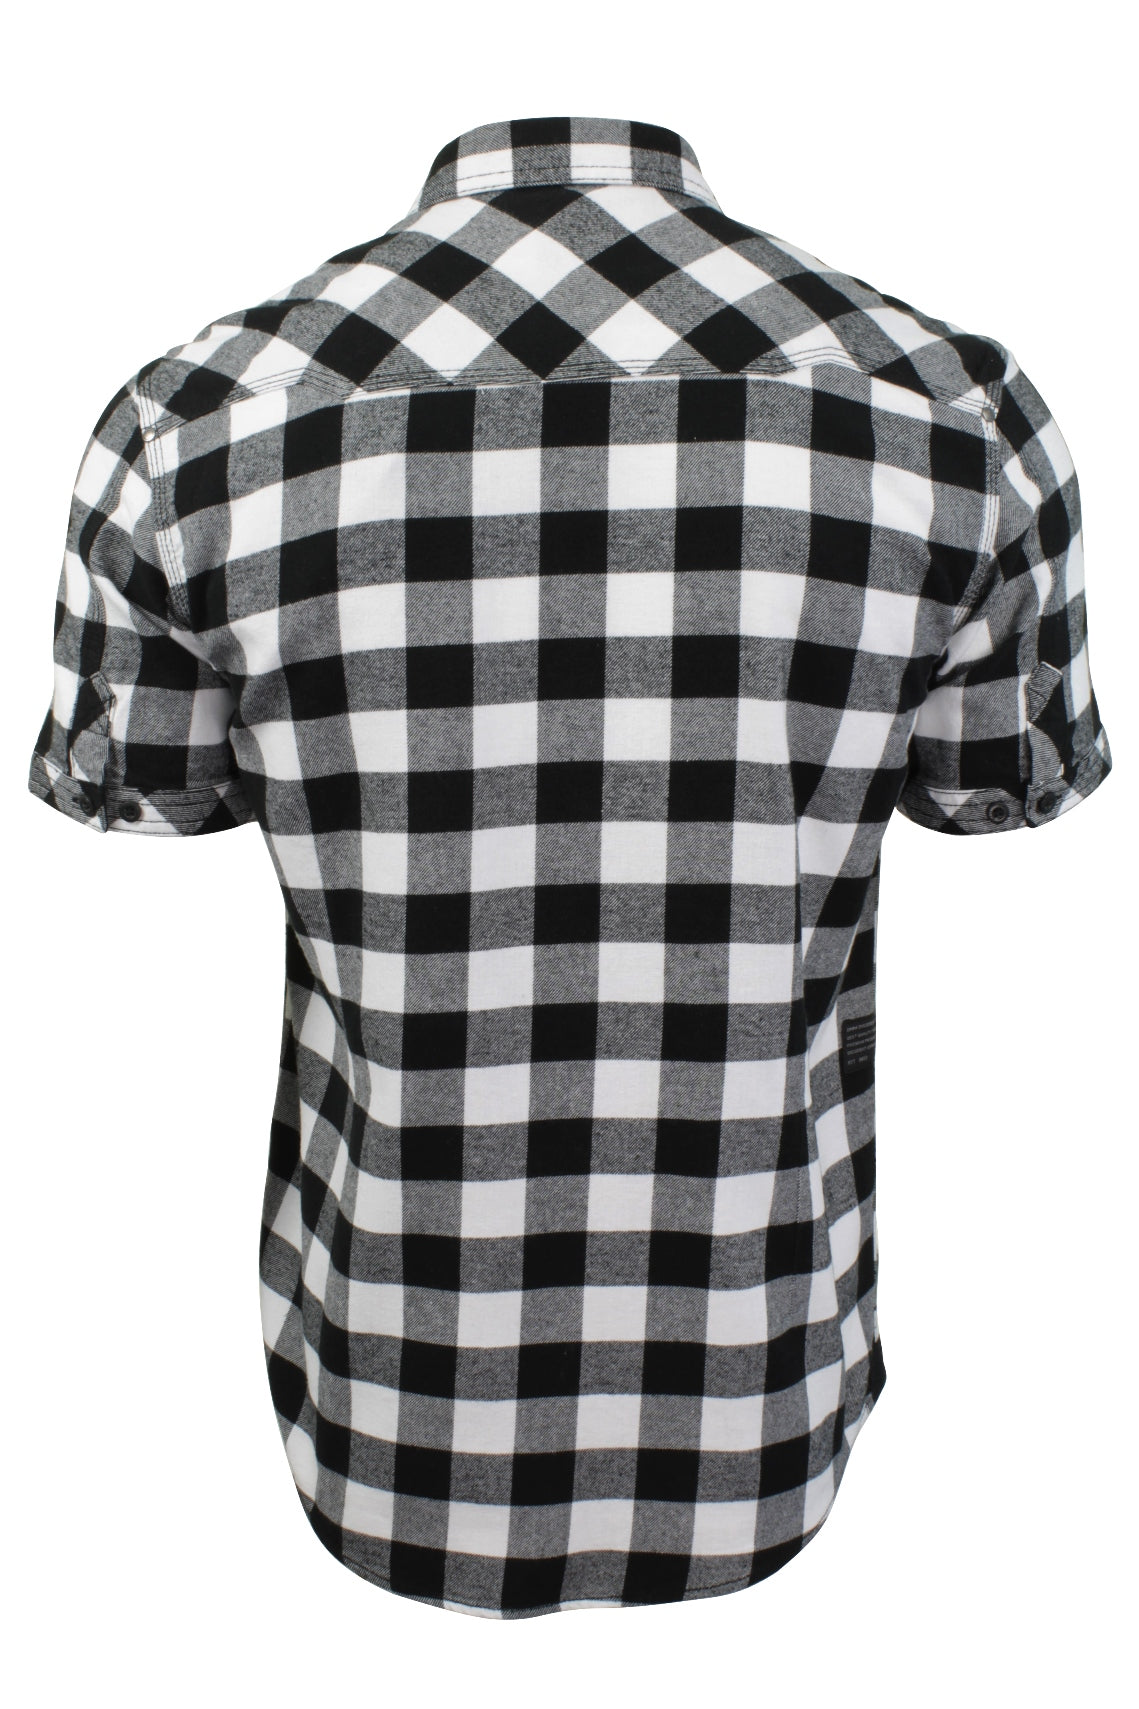 Mens Buffalo Check Shirt by Dissident 'Pedroza' Short Sleeved, 03, 1H8939, #colour_Optic White